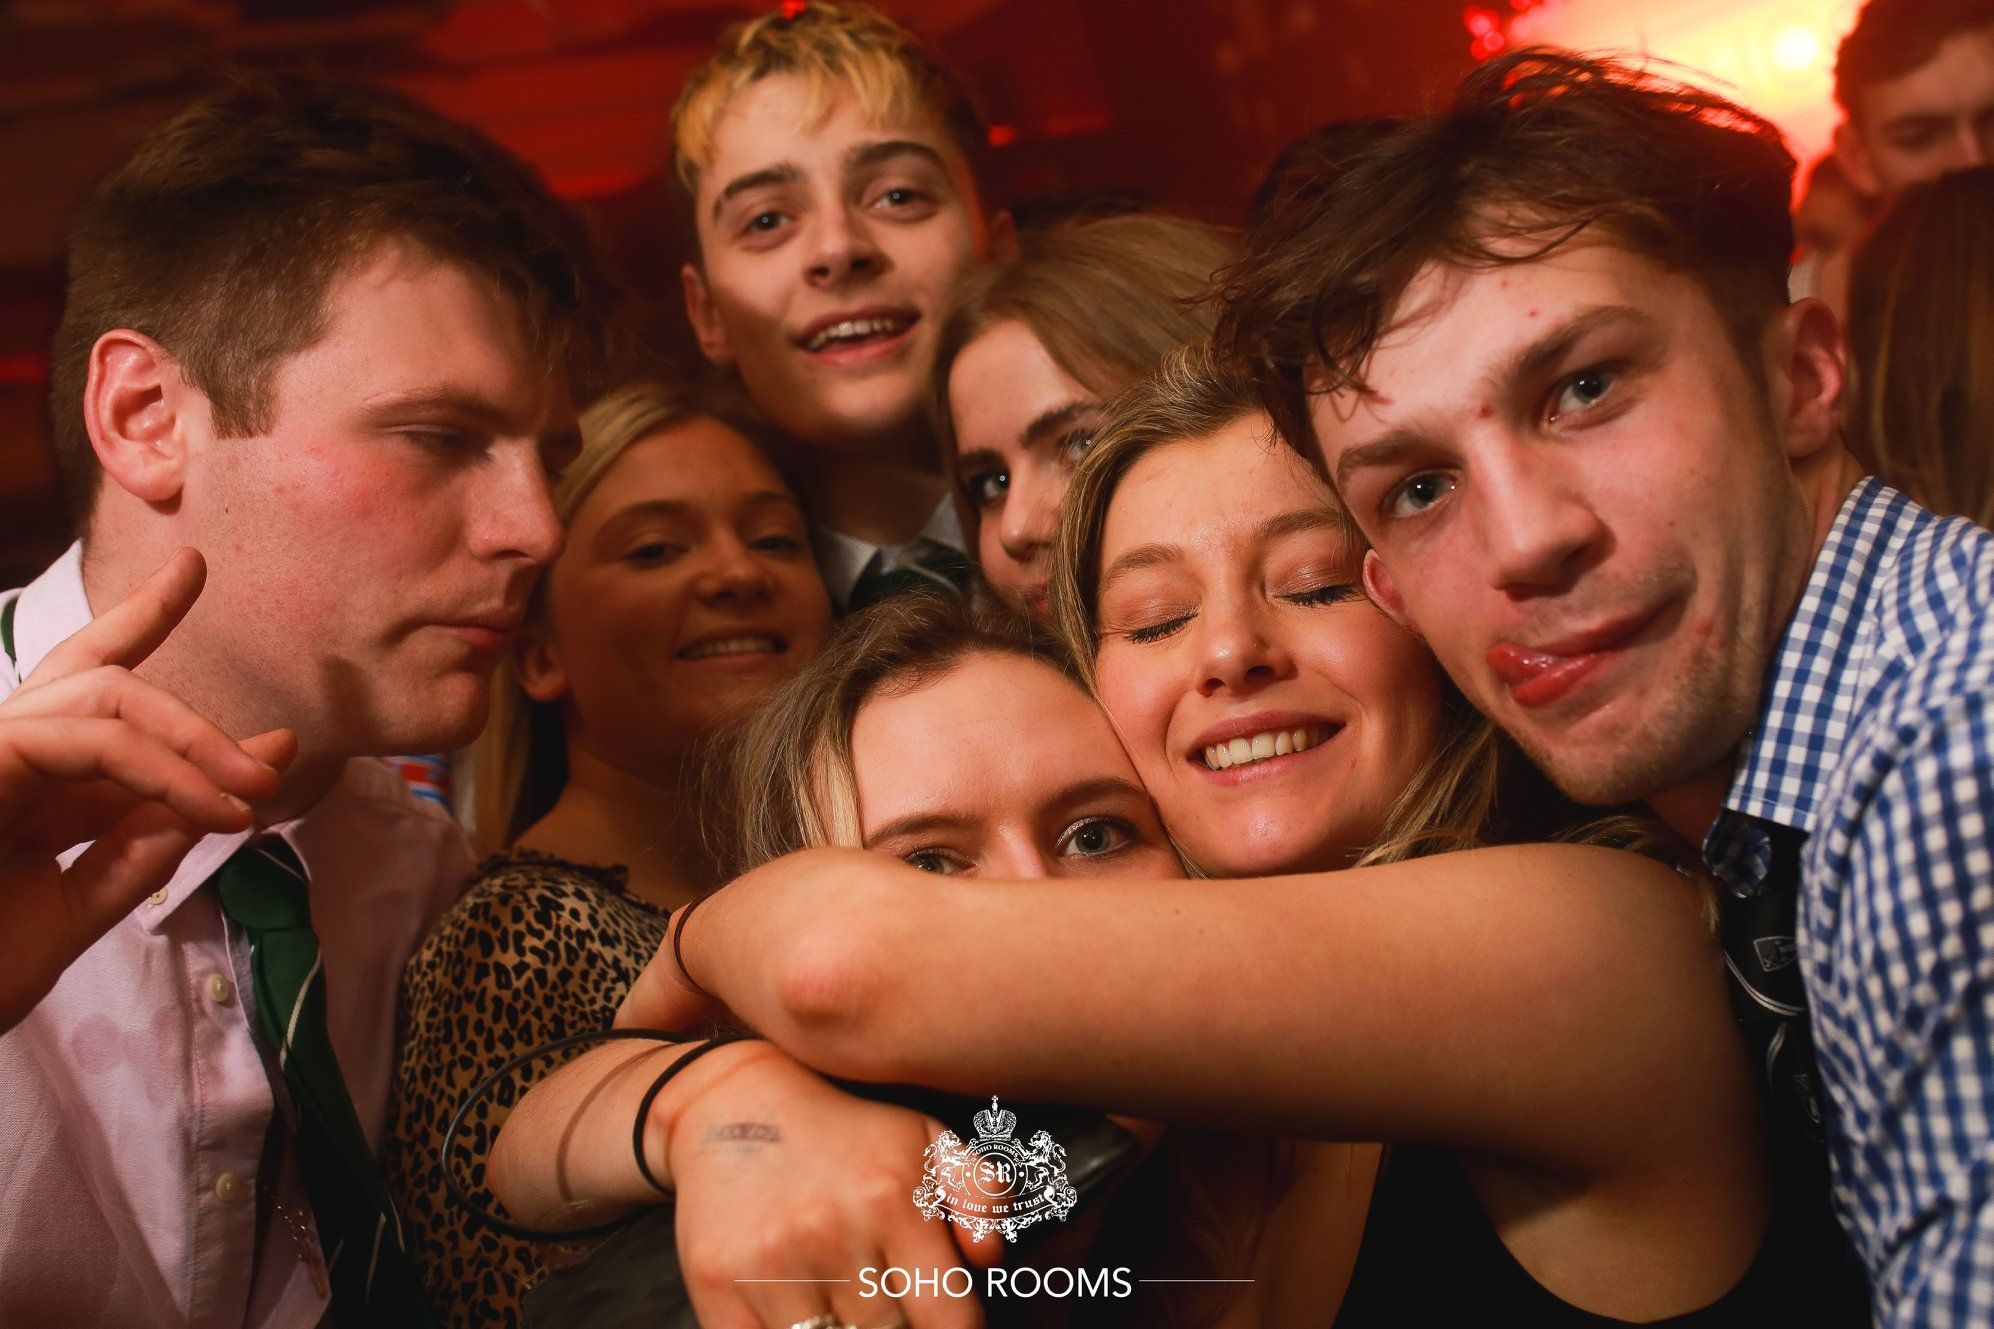 Image may contain: Party, Finger, Night Life, Night Club, Club, Person, Human